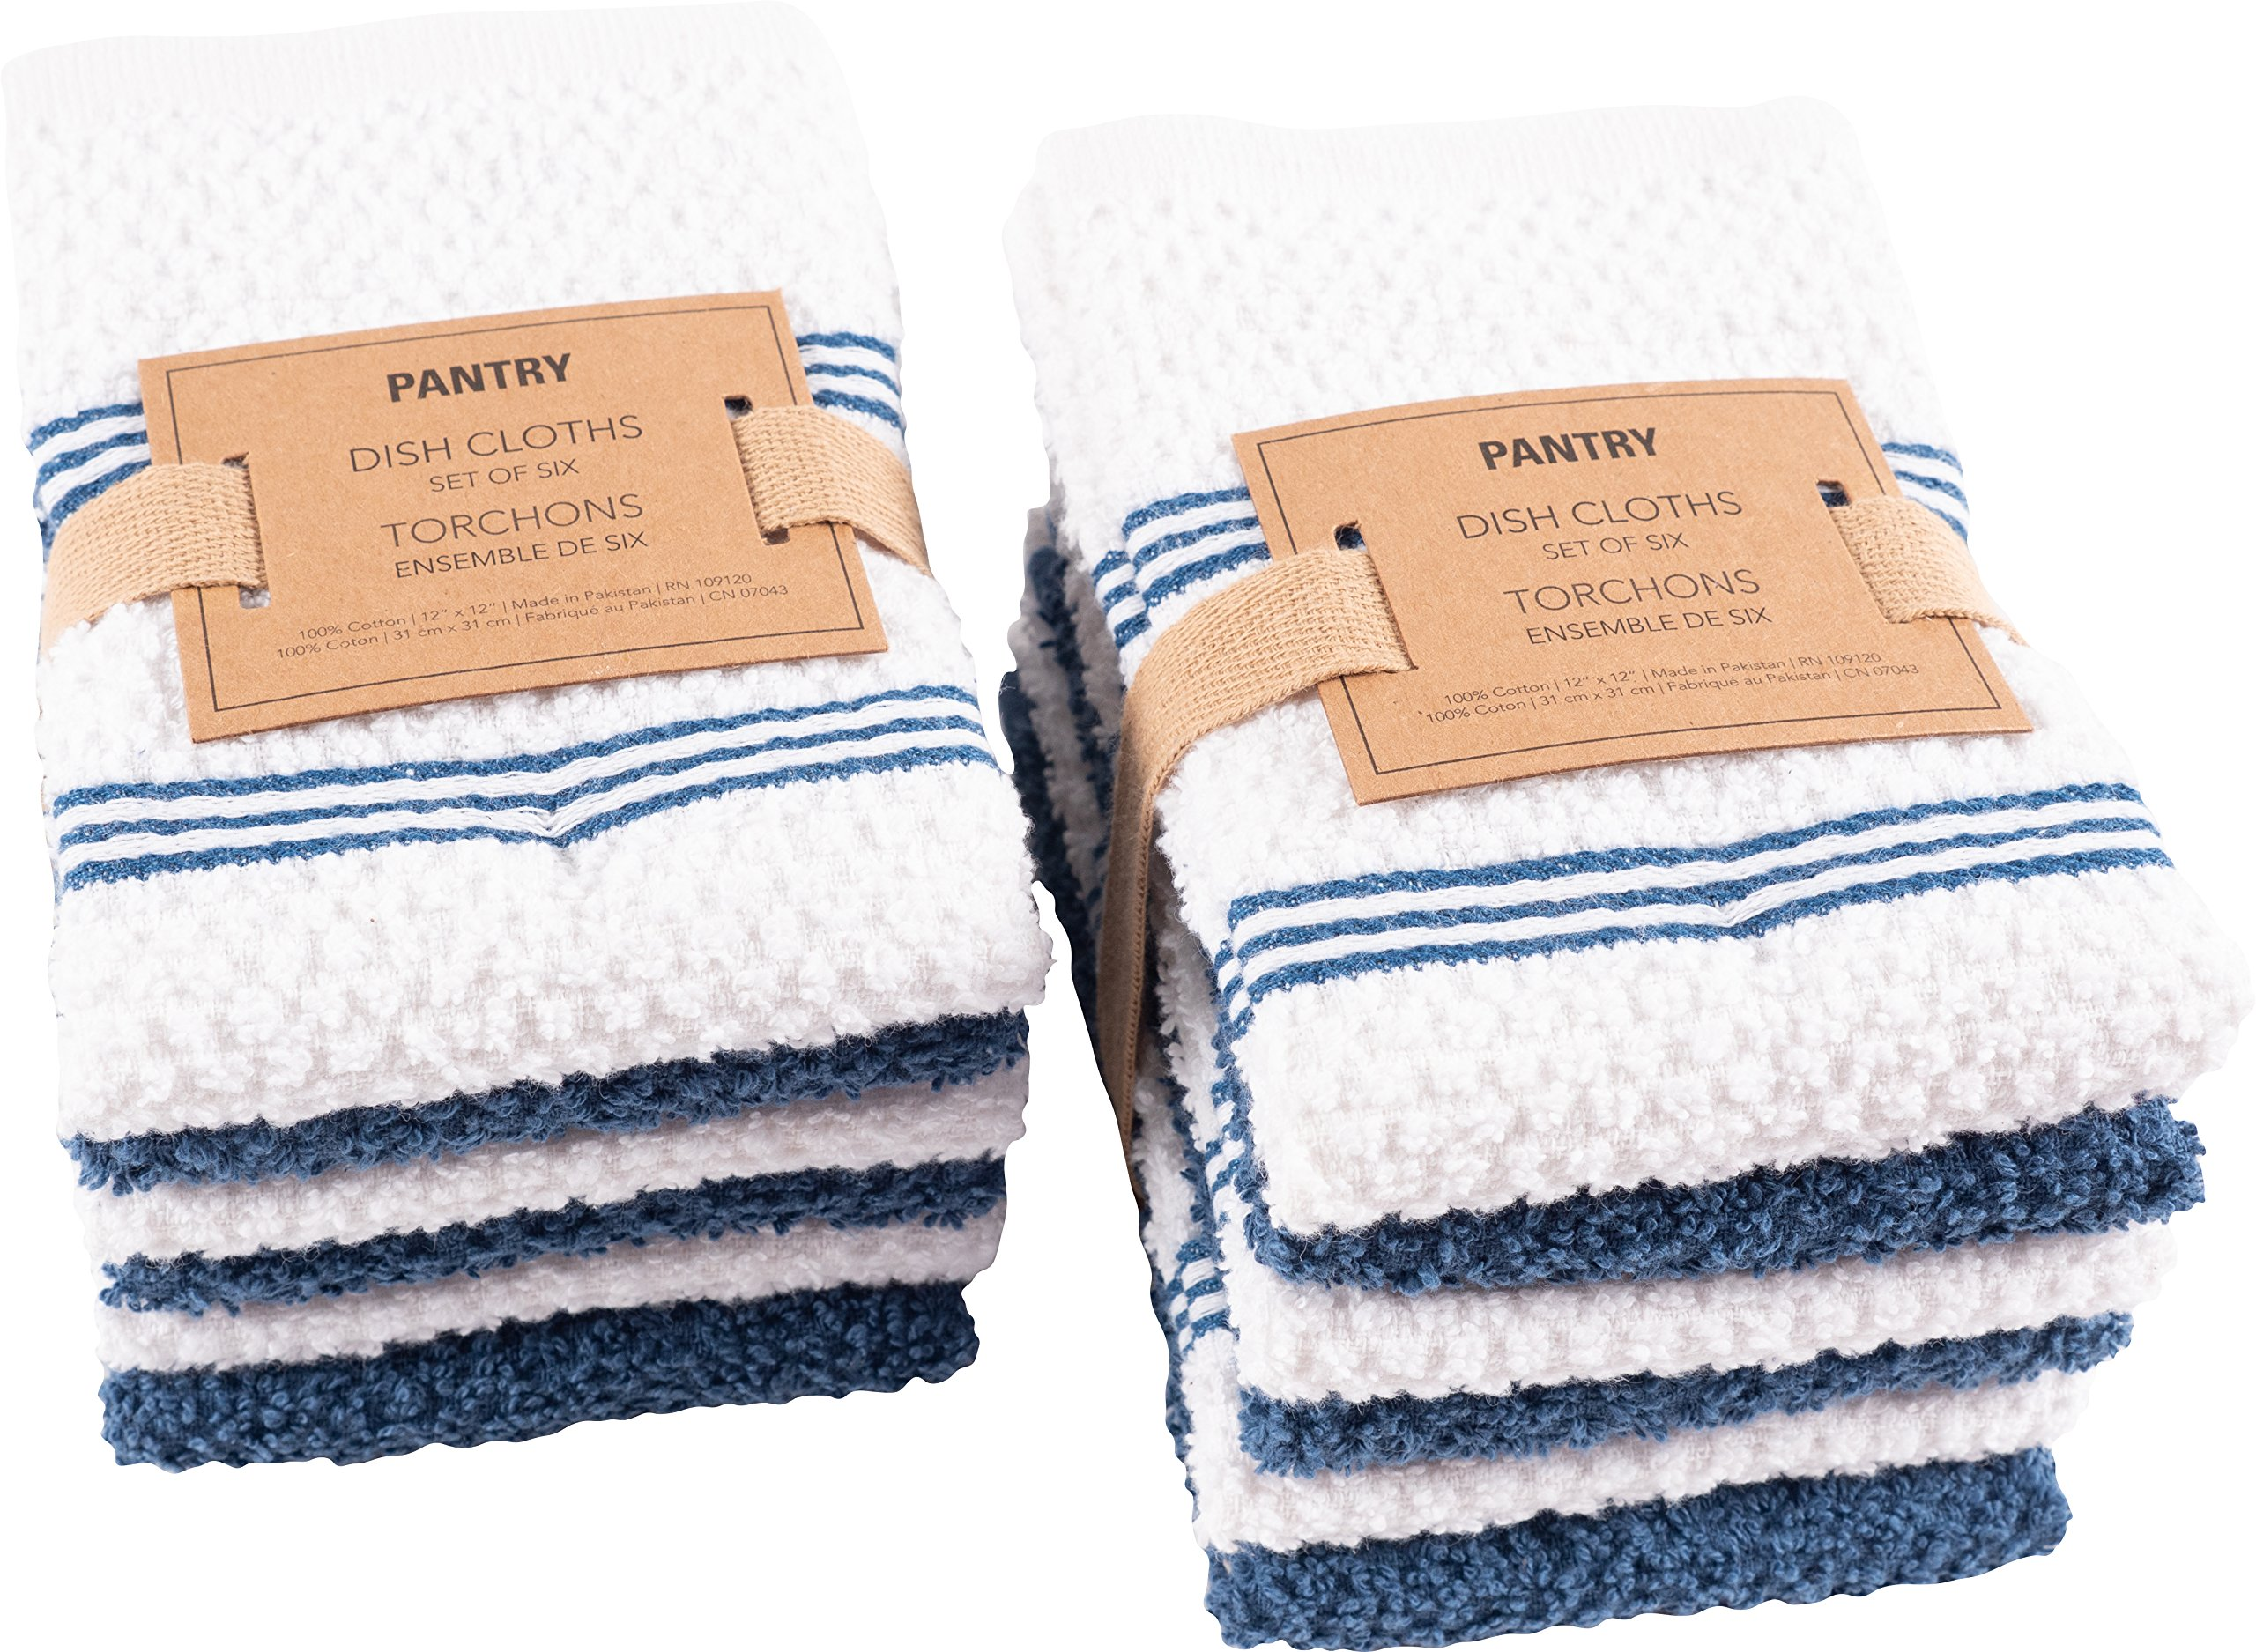 KAF Home Pantry Piedmont Dish Cloths (Set of 12, 12x12 inches), 100% Cotton, Ultra Absorbent Terry Towels - Paris Blue by KAF Home (Image #3)